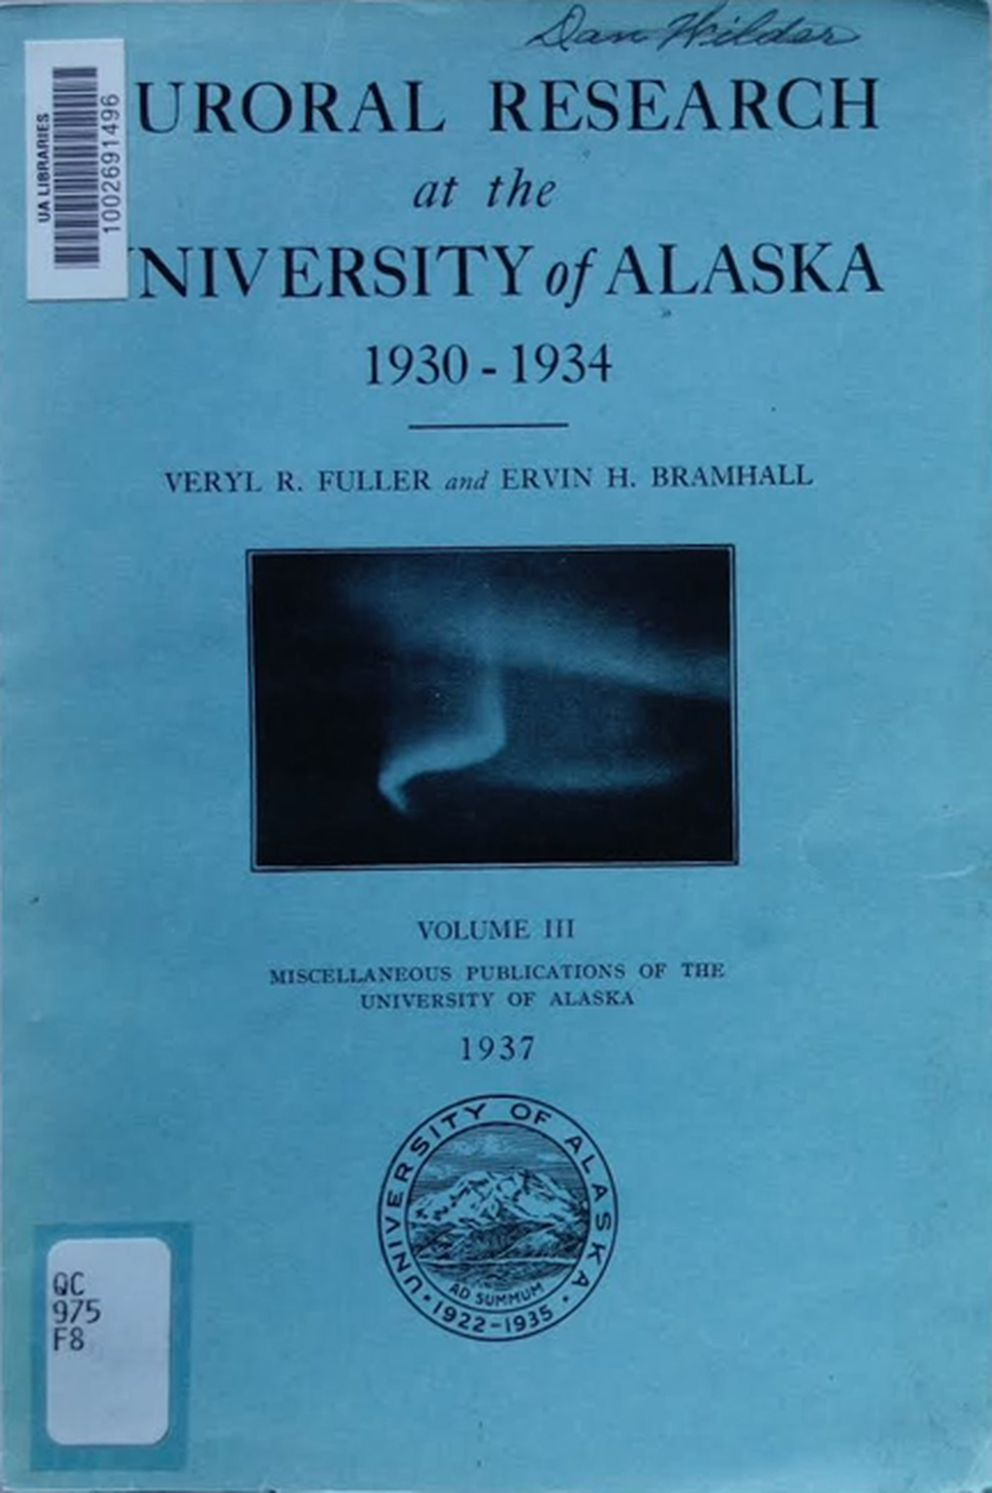 The first scientific study at the University of Alaska, to determine the height of the aurora over Fairbanks. (Courtesy Ned Rozell)